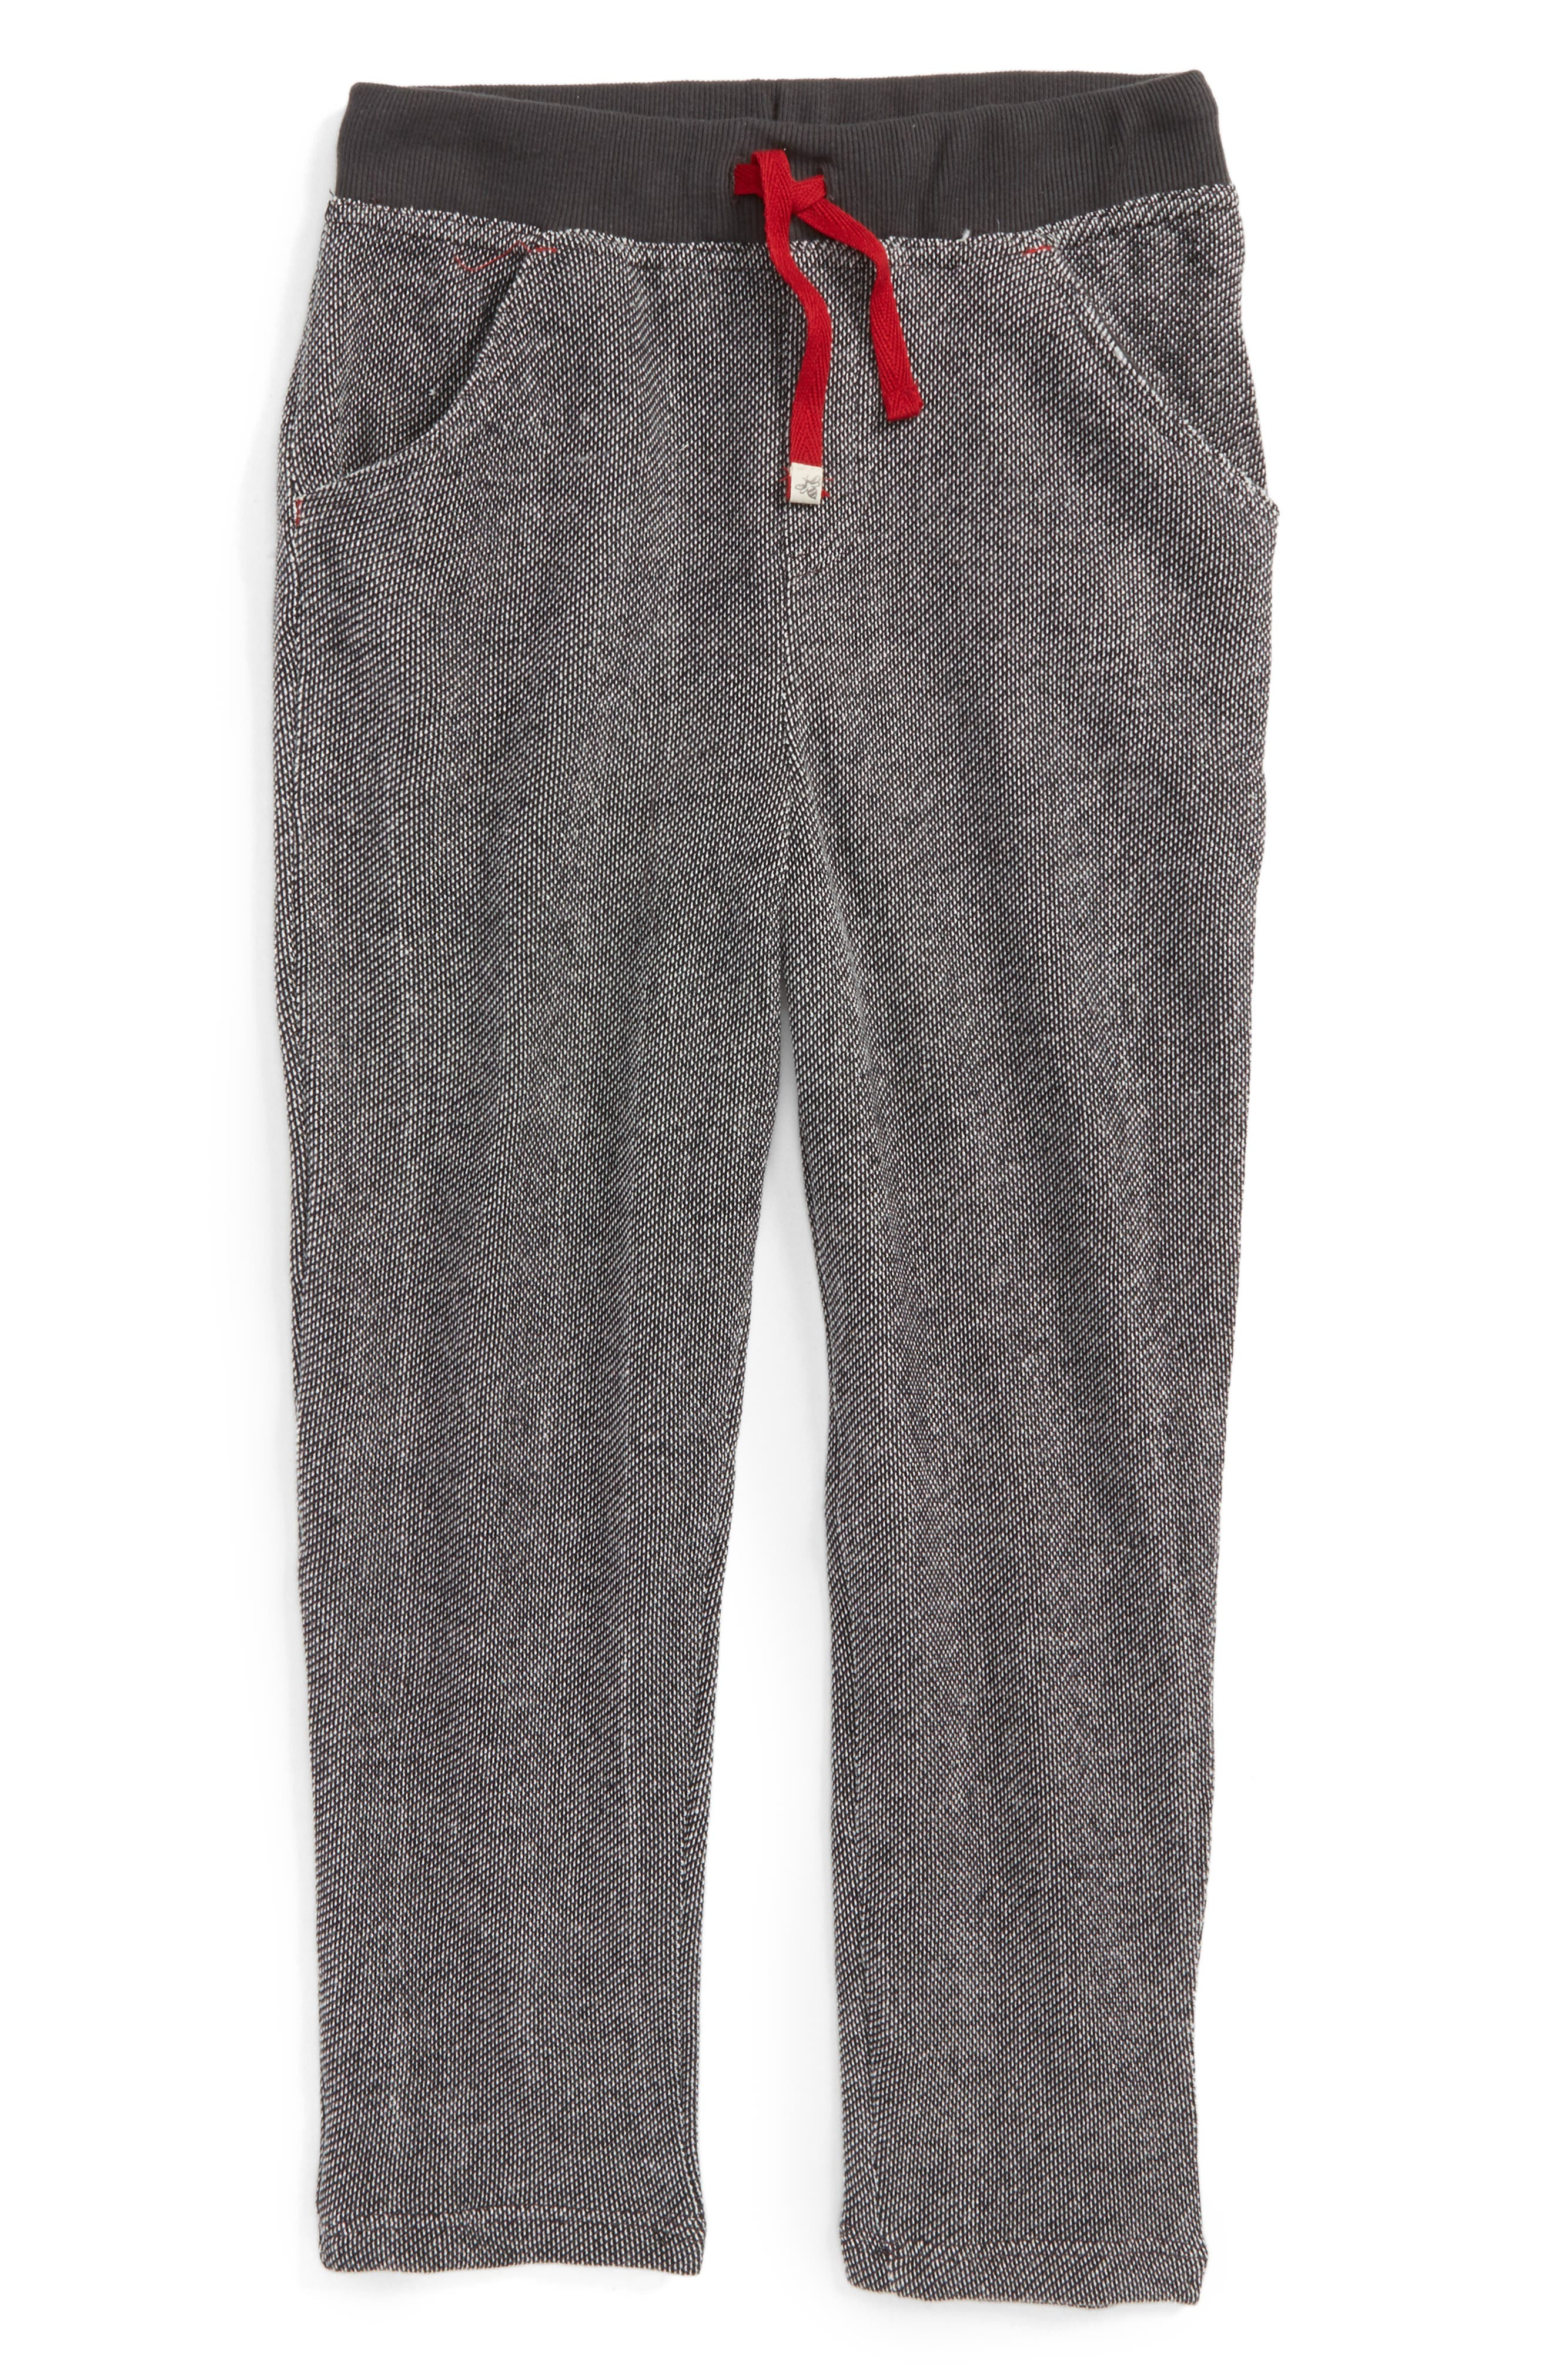 Alternate Image 1 Selected - Burt's Bees Baby Piqué Organic Cotton Pants (Toddler Boys & Little Boys)